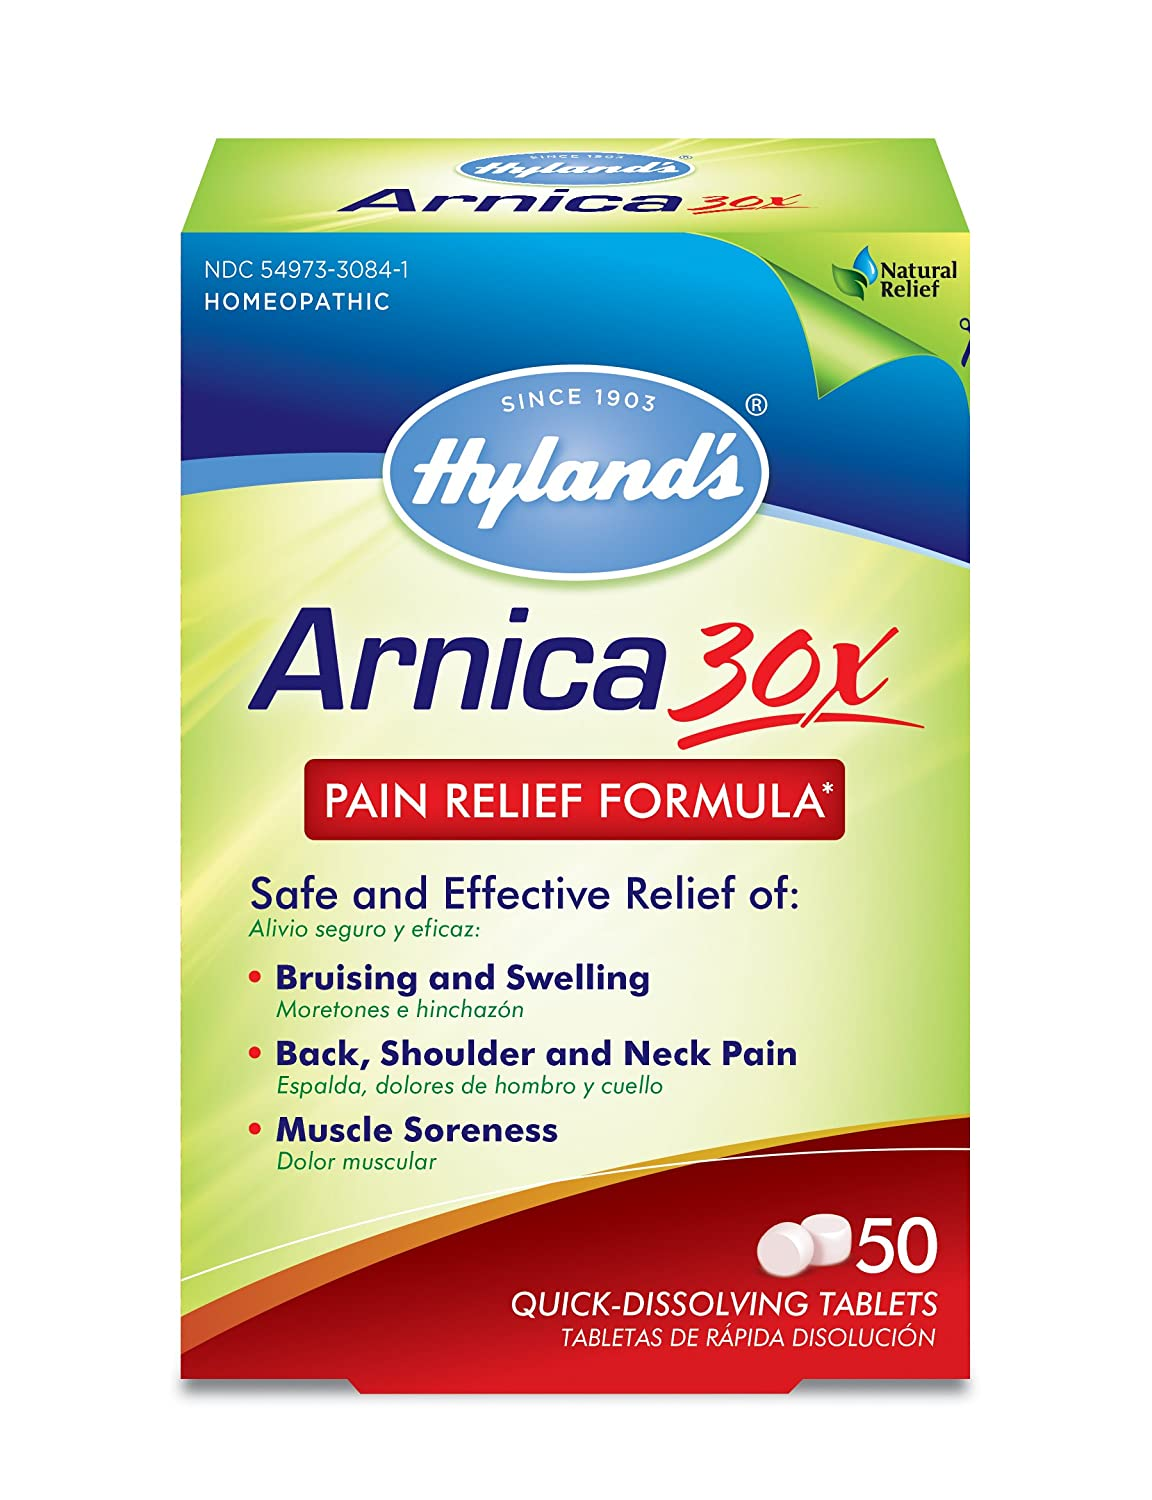 Arnica Montana 30x Tablets by Hyland's, Natural Relief of Bruises, Swelling and Muscle Soreness, 50 Count: Beauty